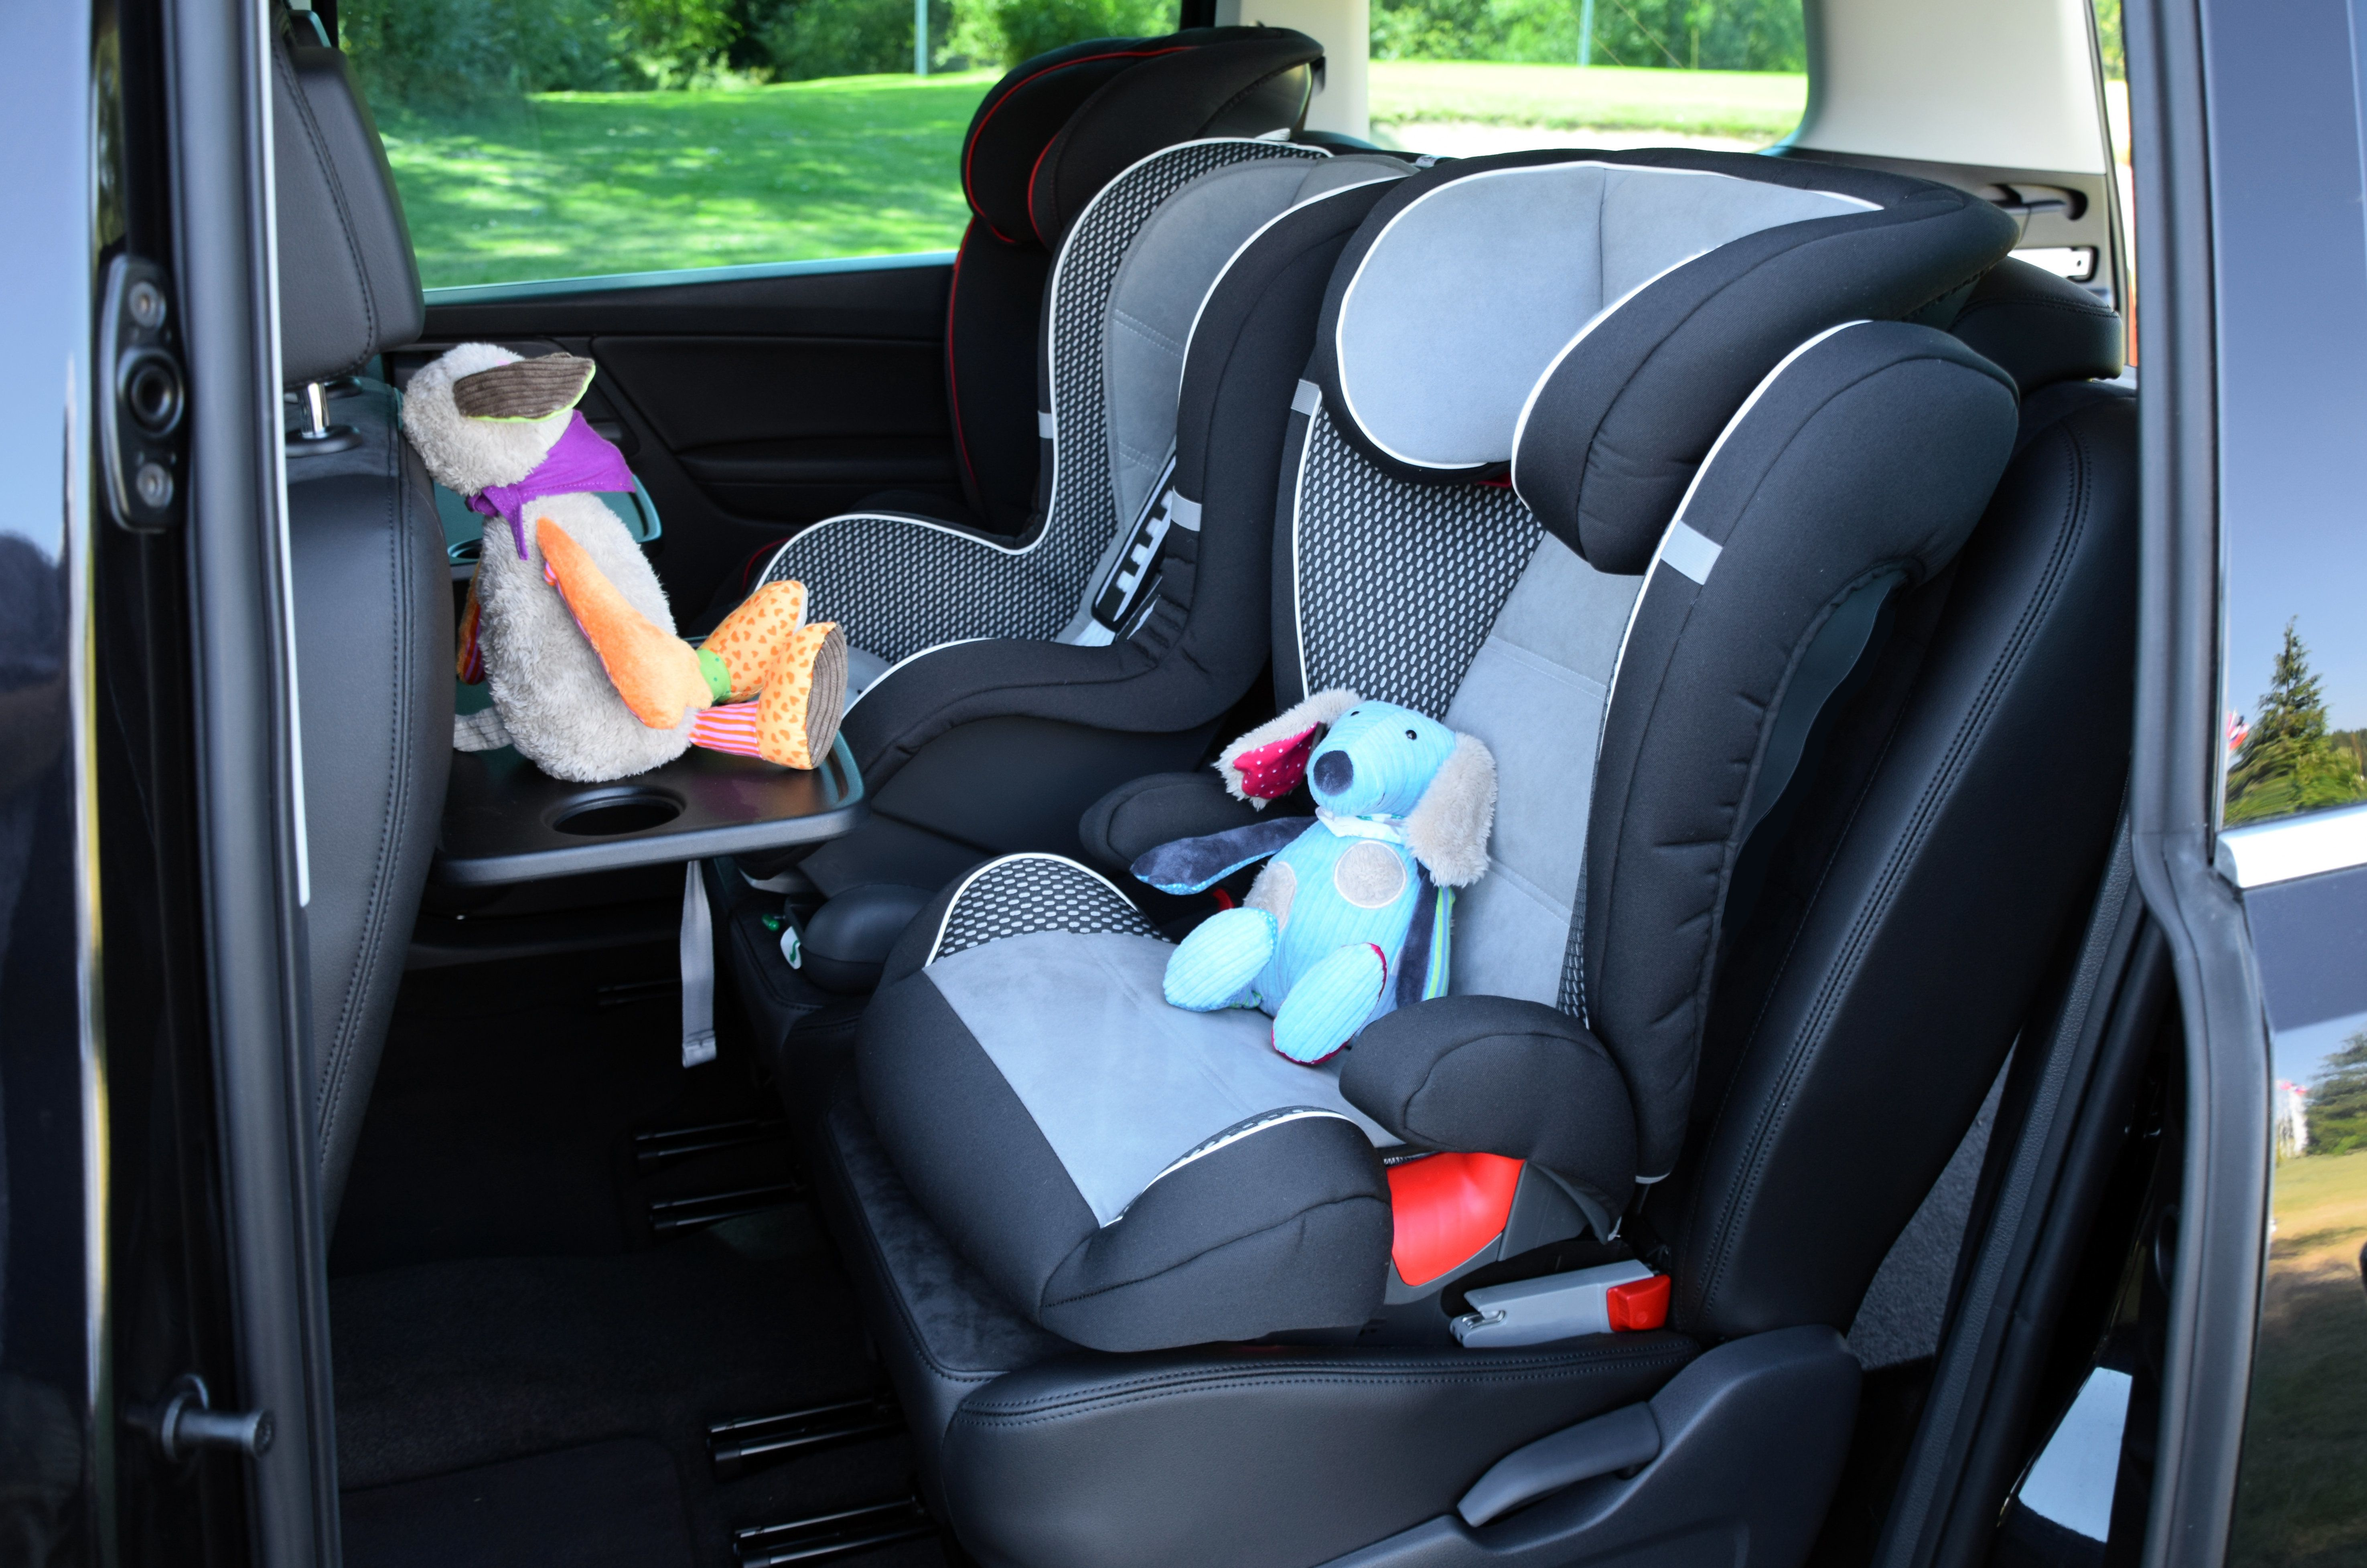 Studies have shown that most parents installcar seatsincorrectly.